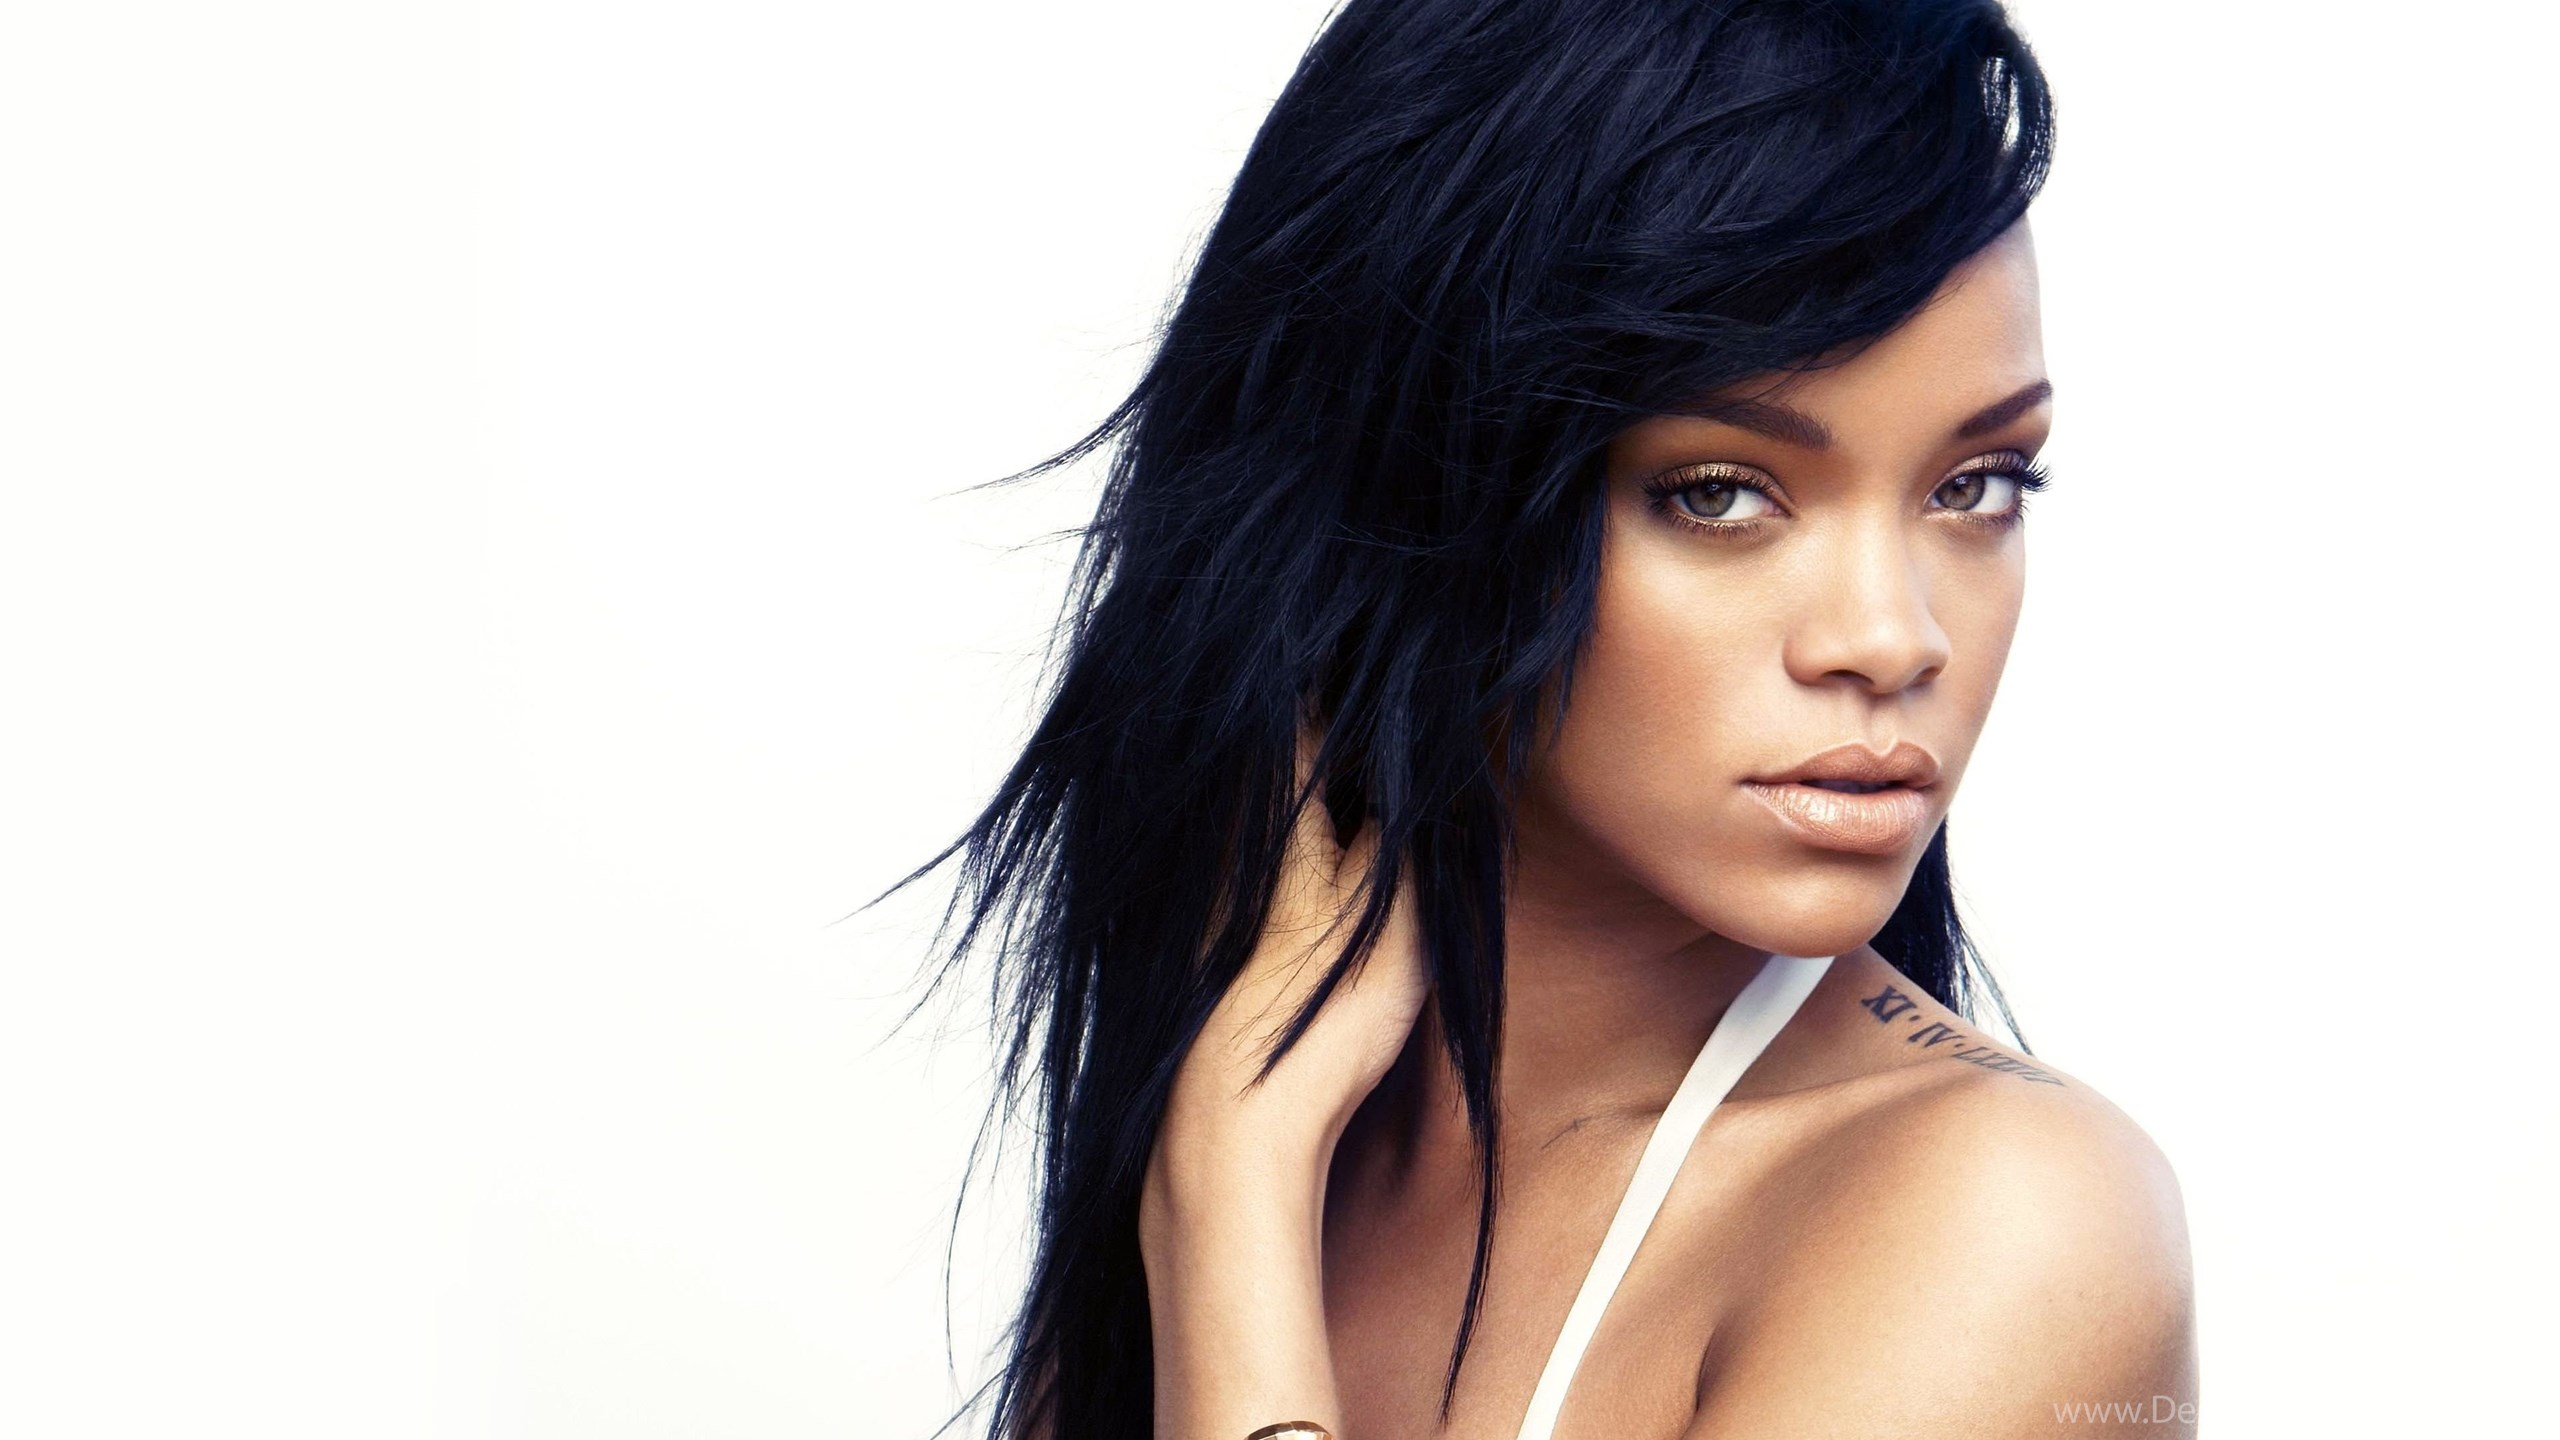 rihanna wallpapers page 1 hd wallpapers desktop background